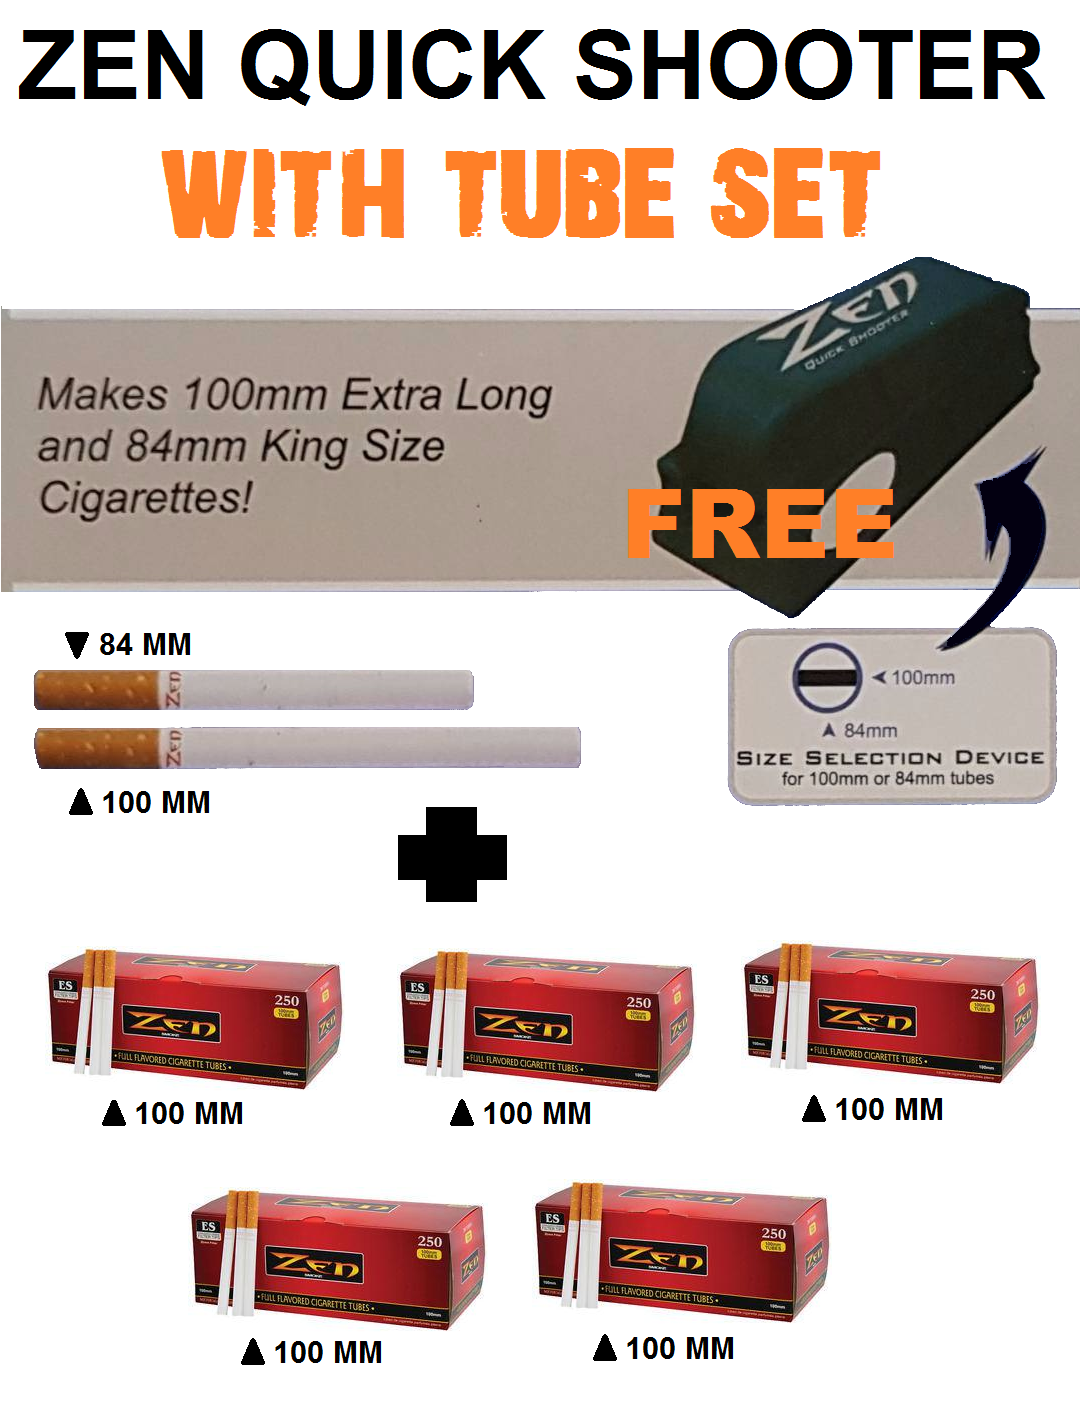 zen qick shooter with tube without price.png